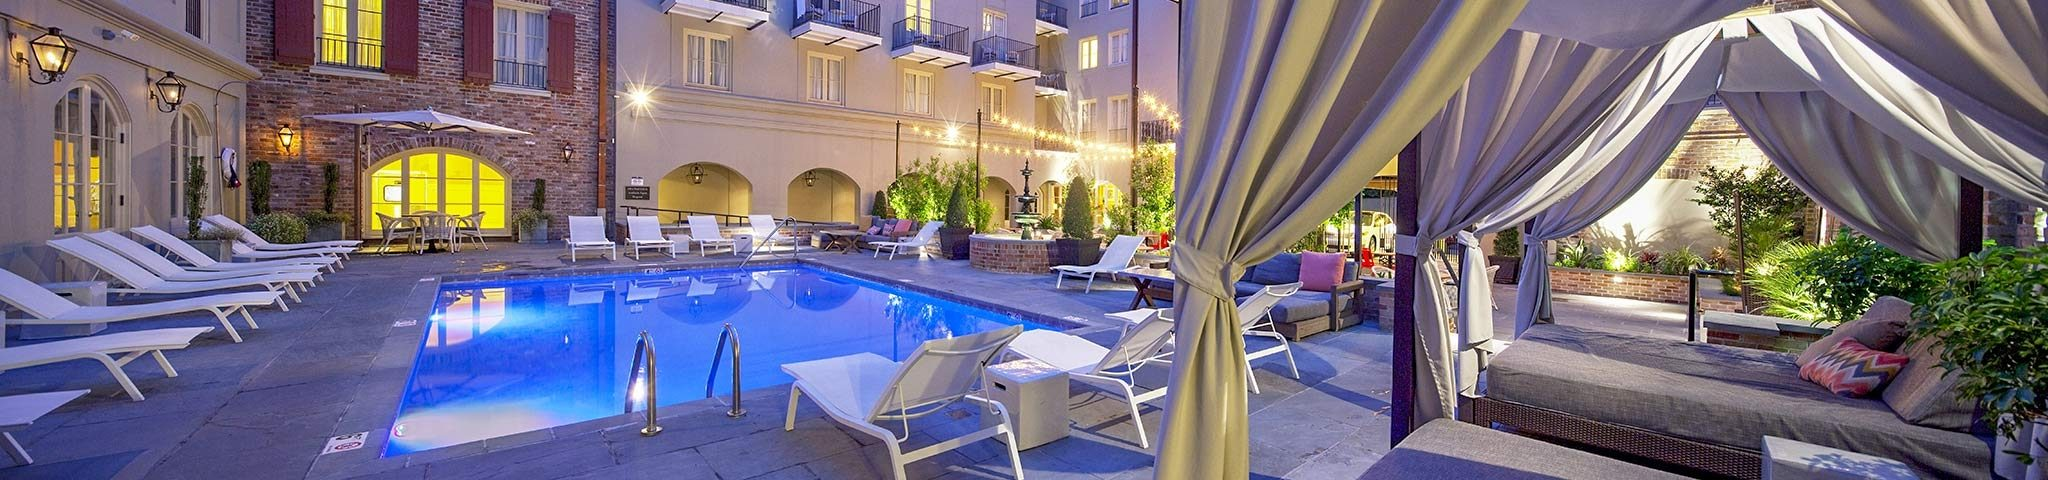 Best New Orleans Hotels